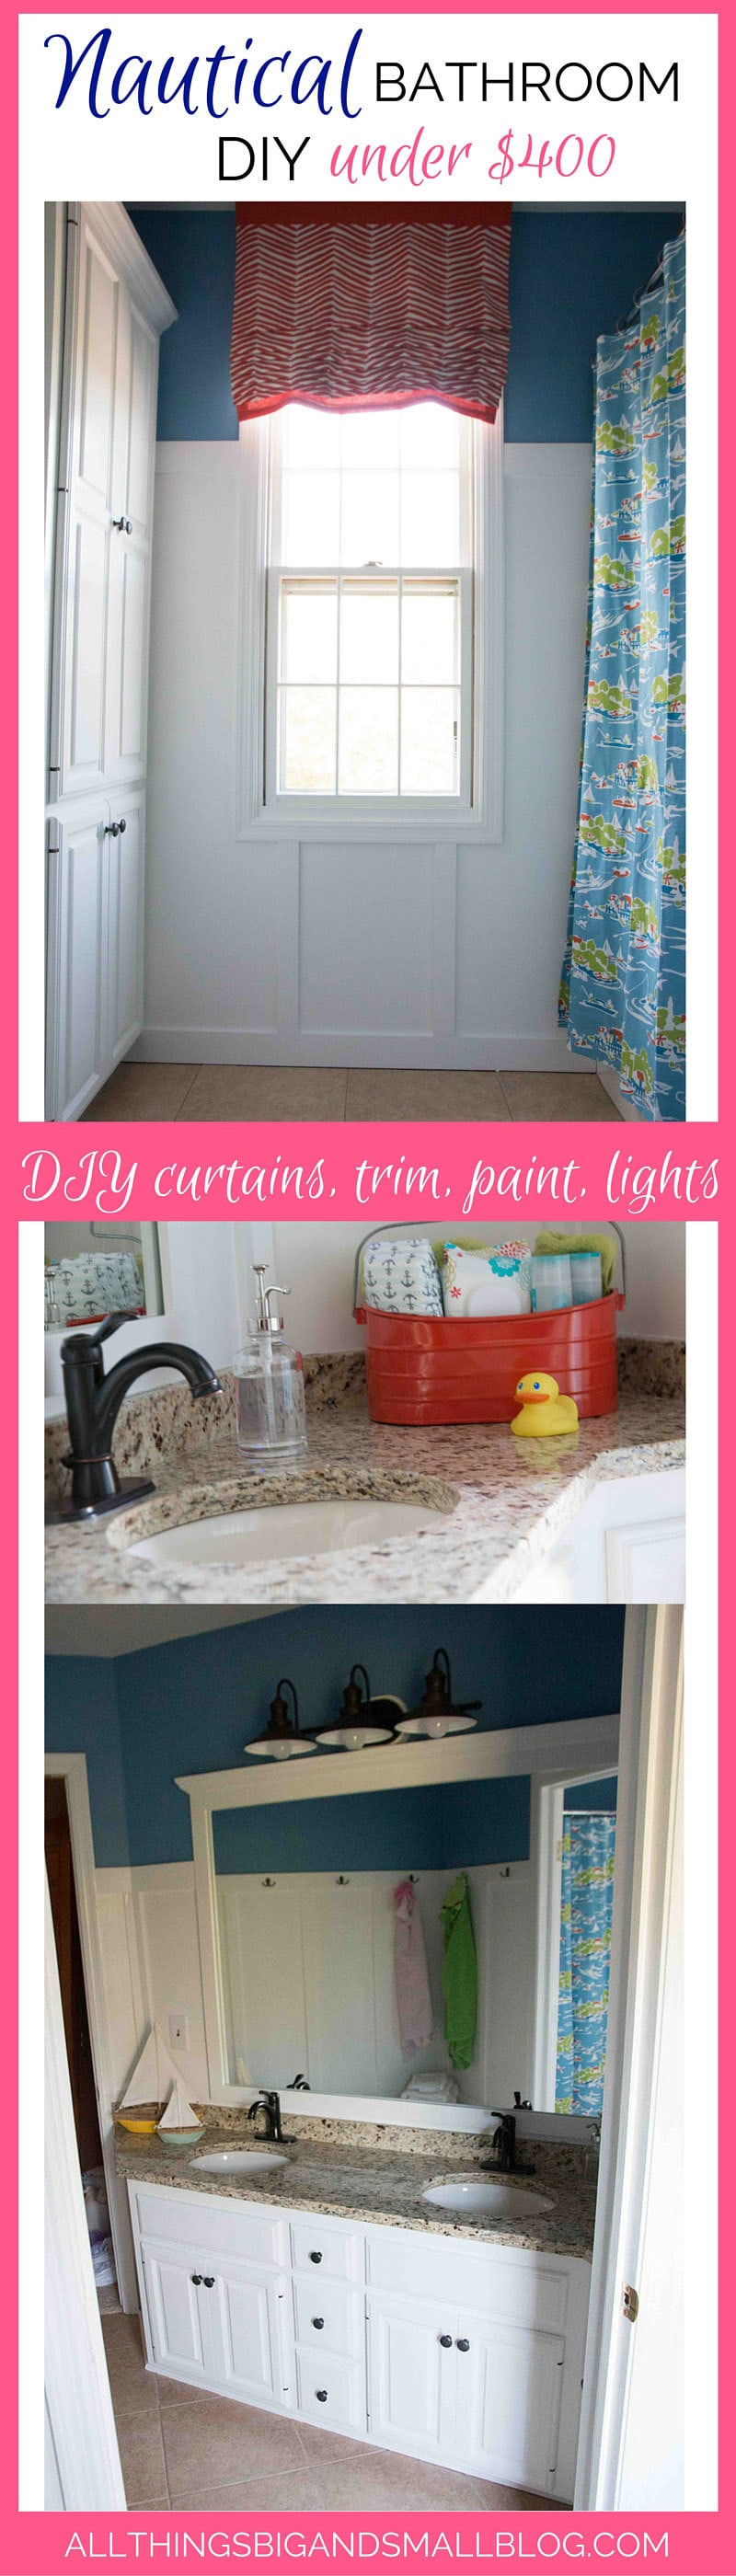 DIY nautical budget-friendly bathroom! Read and repin for later because I shared all of the sources, tips and tricks! Plus more from All Things Big and Small Blog--a DIY Lifestyle blog!